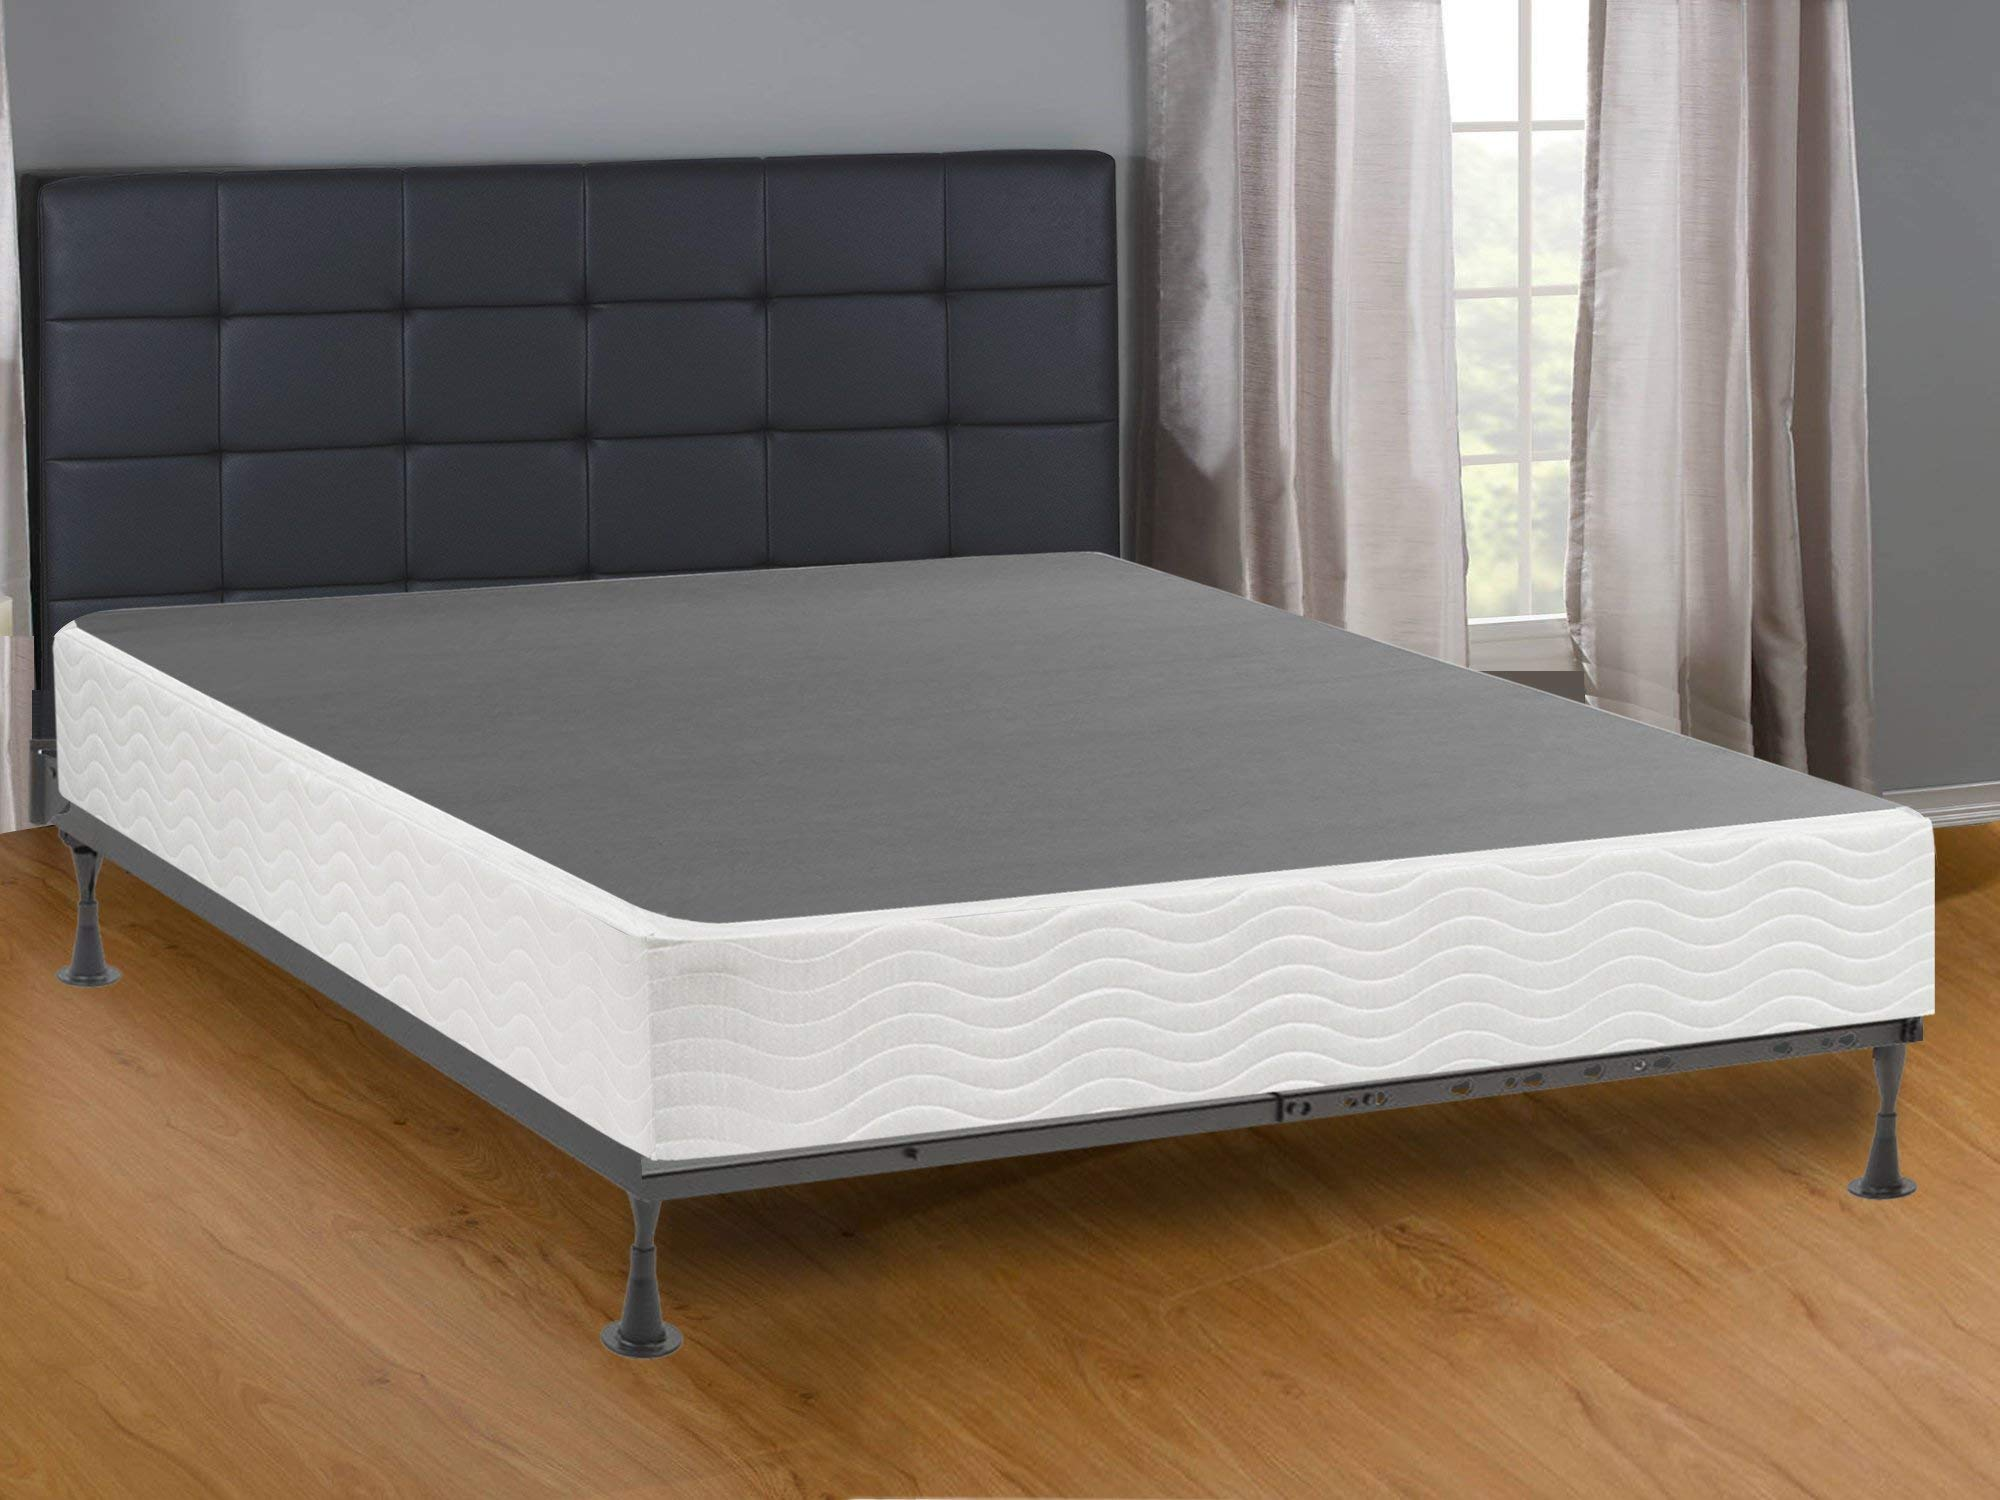 Mattress Comfort Simple Assembly Metal Box Spring/Foundation, Queen, Fully